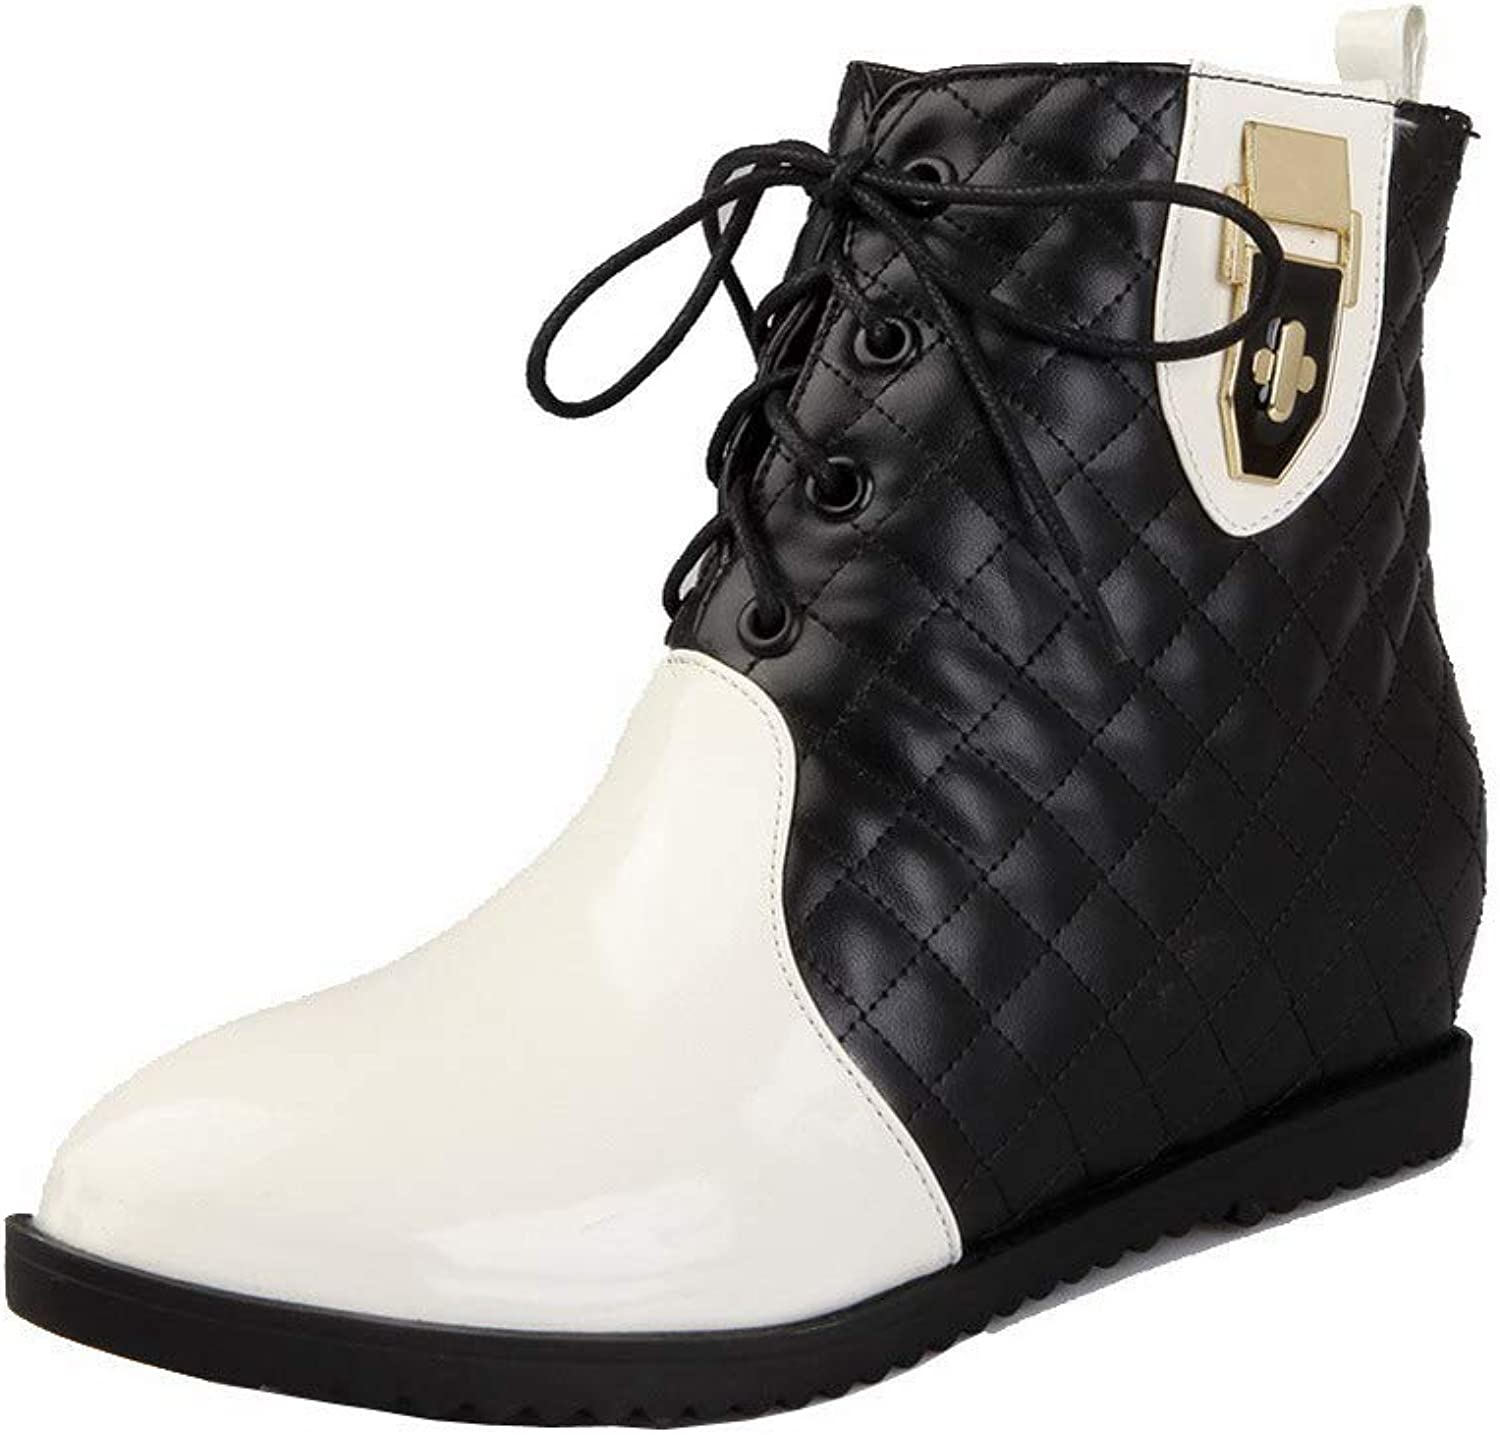 WeenFashion Women's Low-Top Lace-Up Blend Materials Low-Heels Round-Toe Boots, AMGXX126700